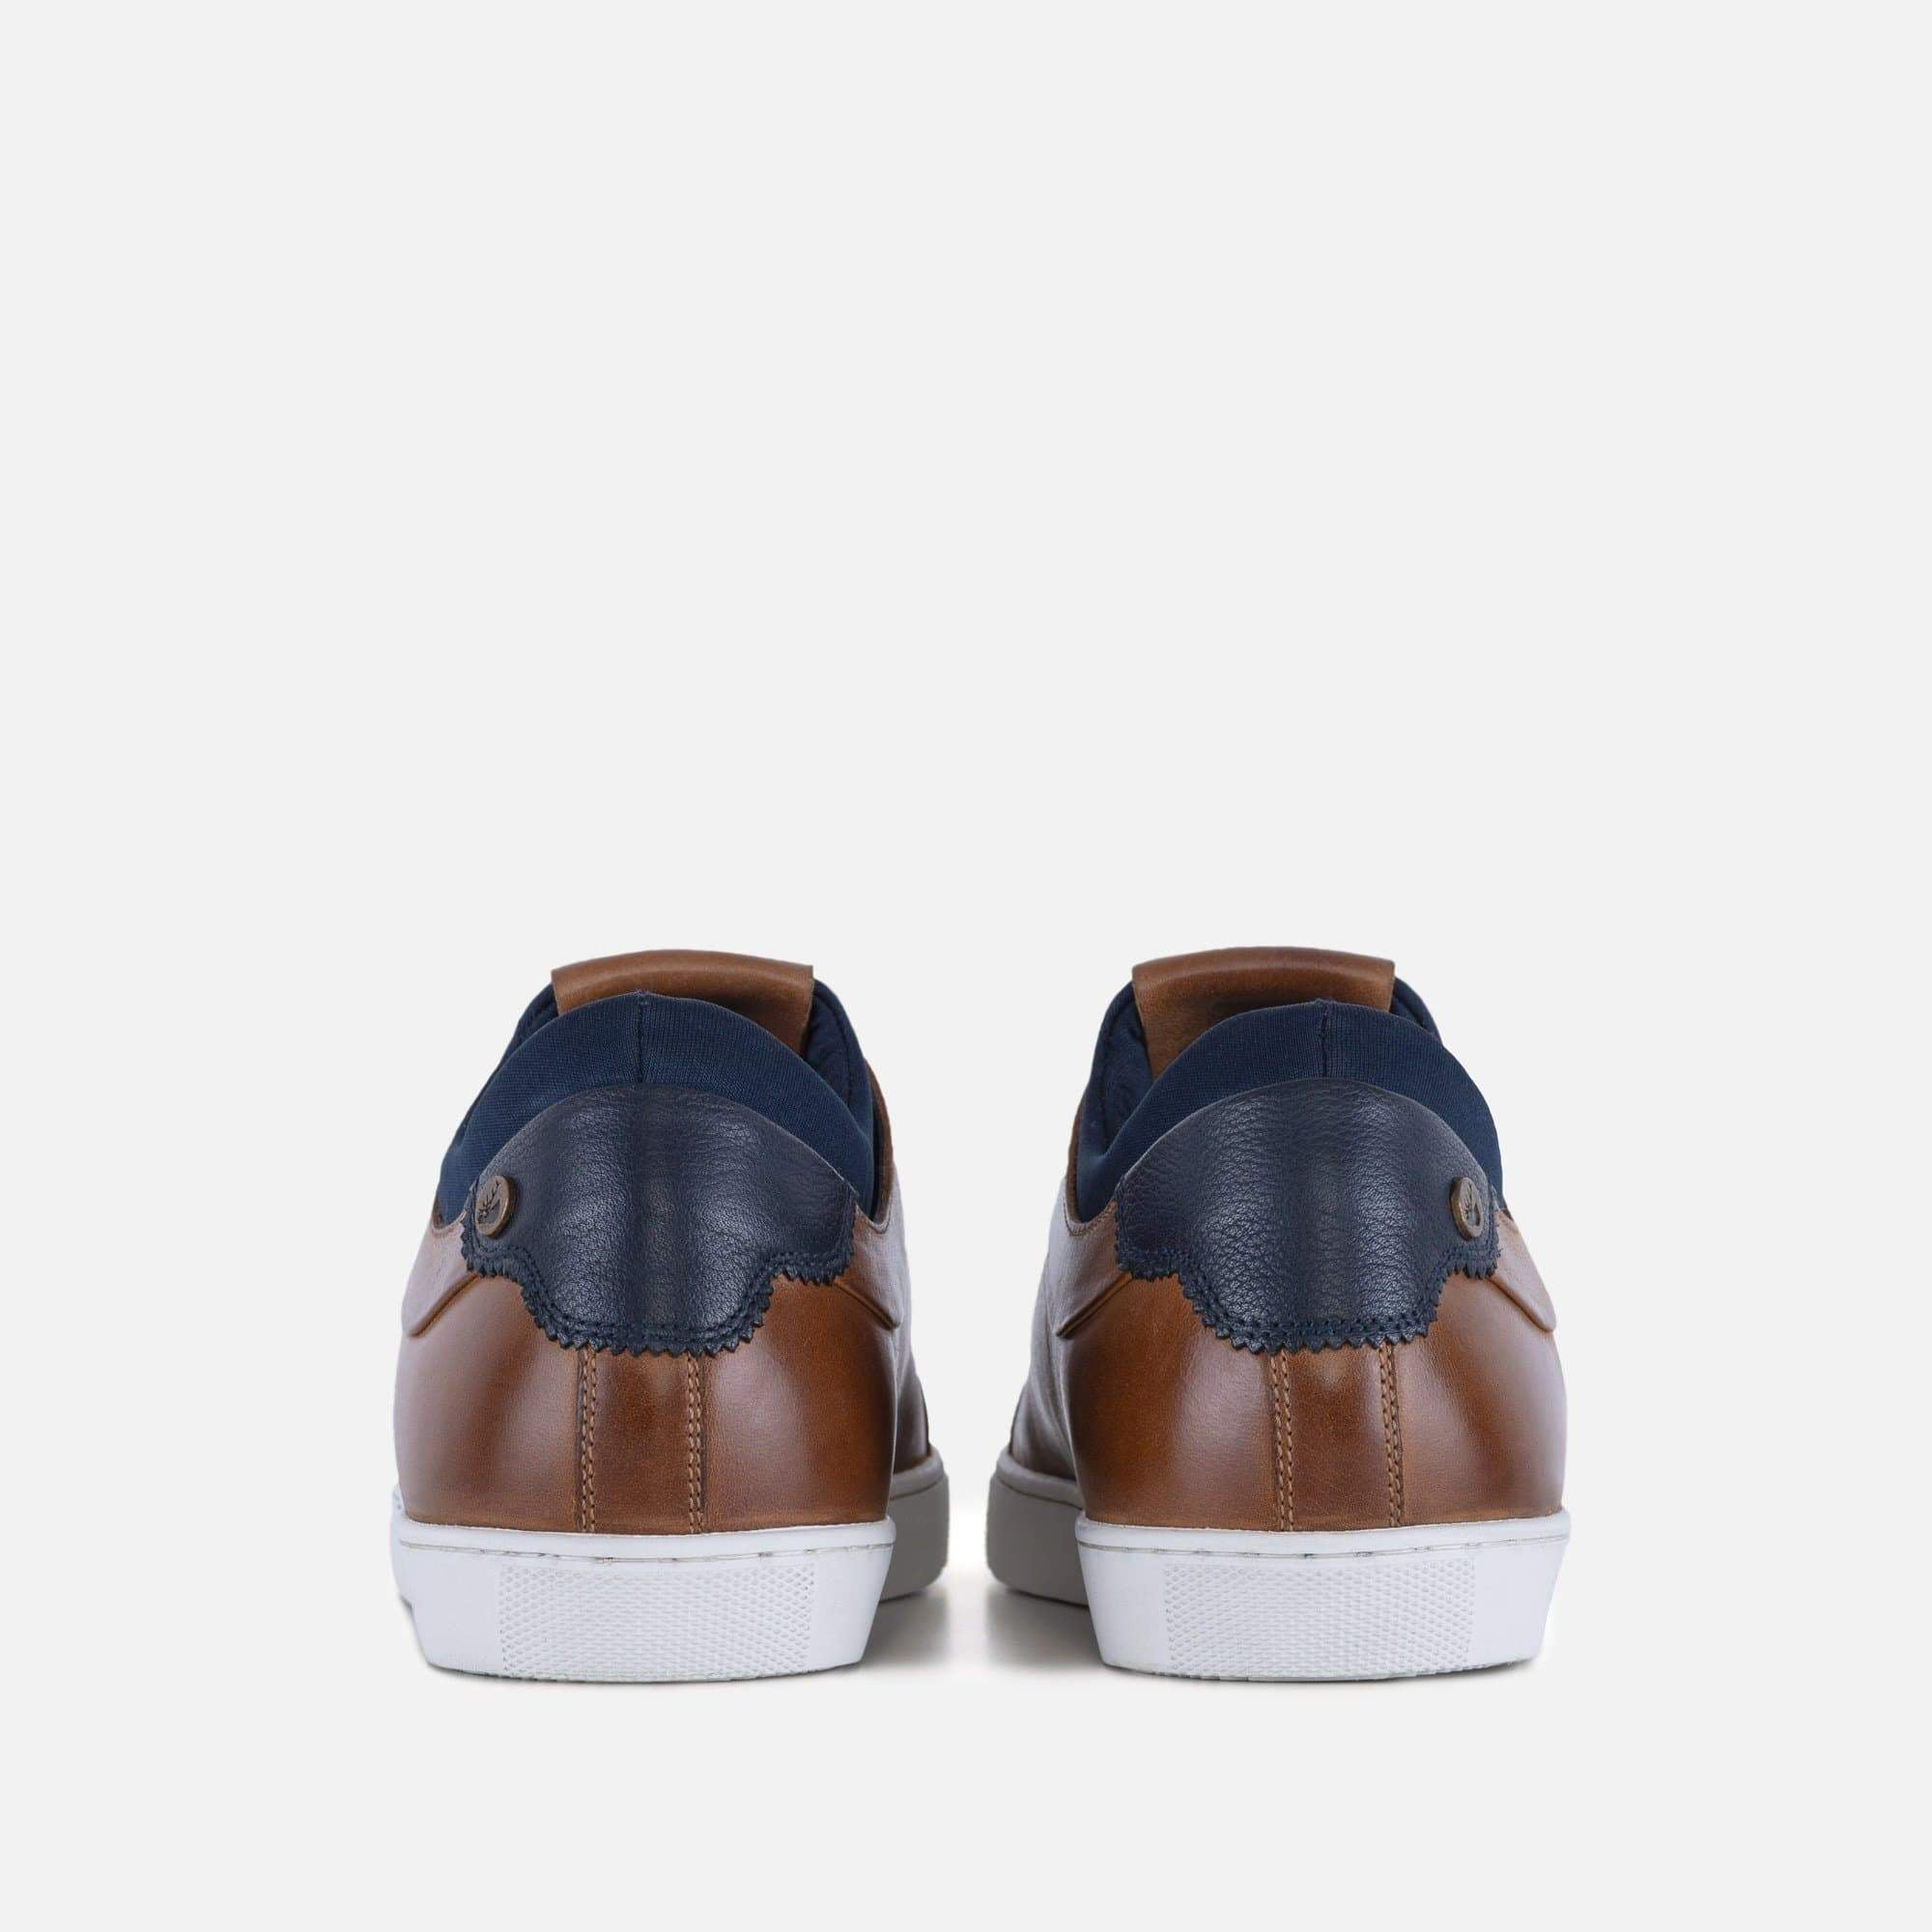 Esteban tan plimsoll with stitch facing detail and contrast colour leather heel piece